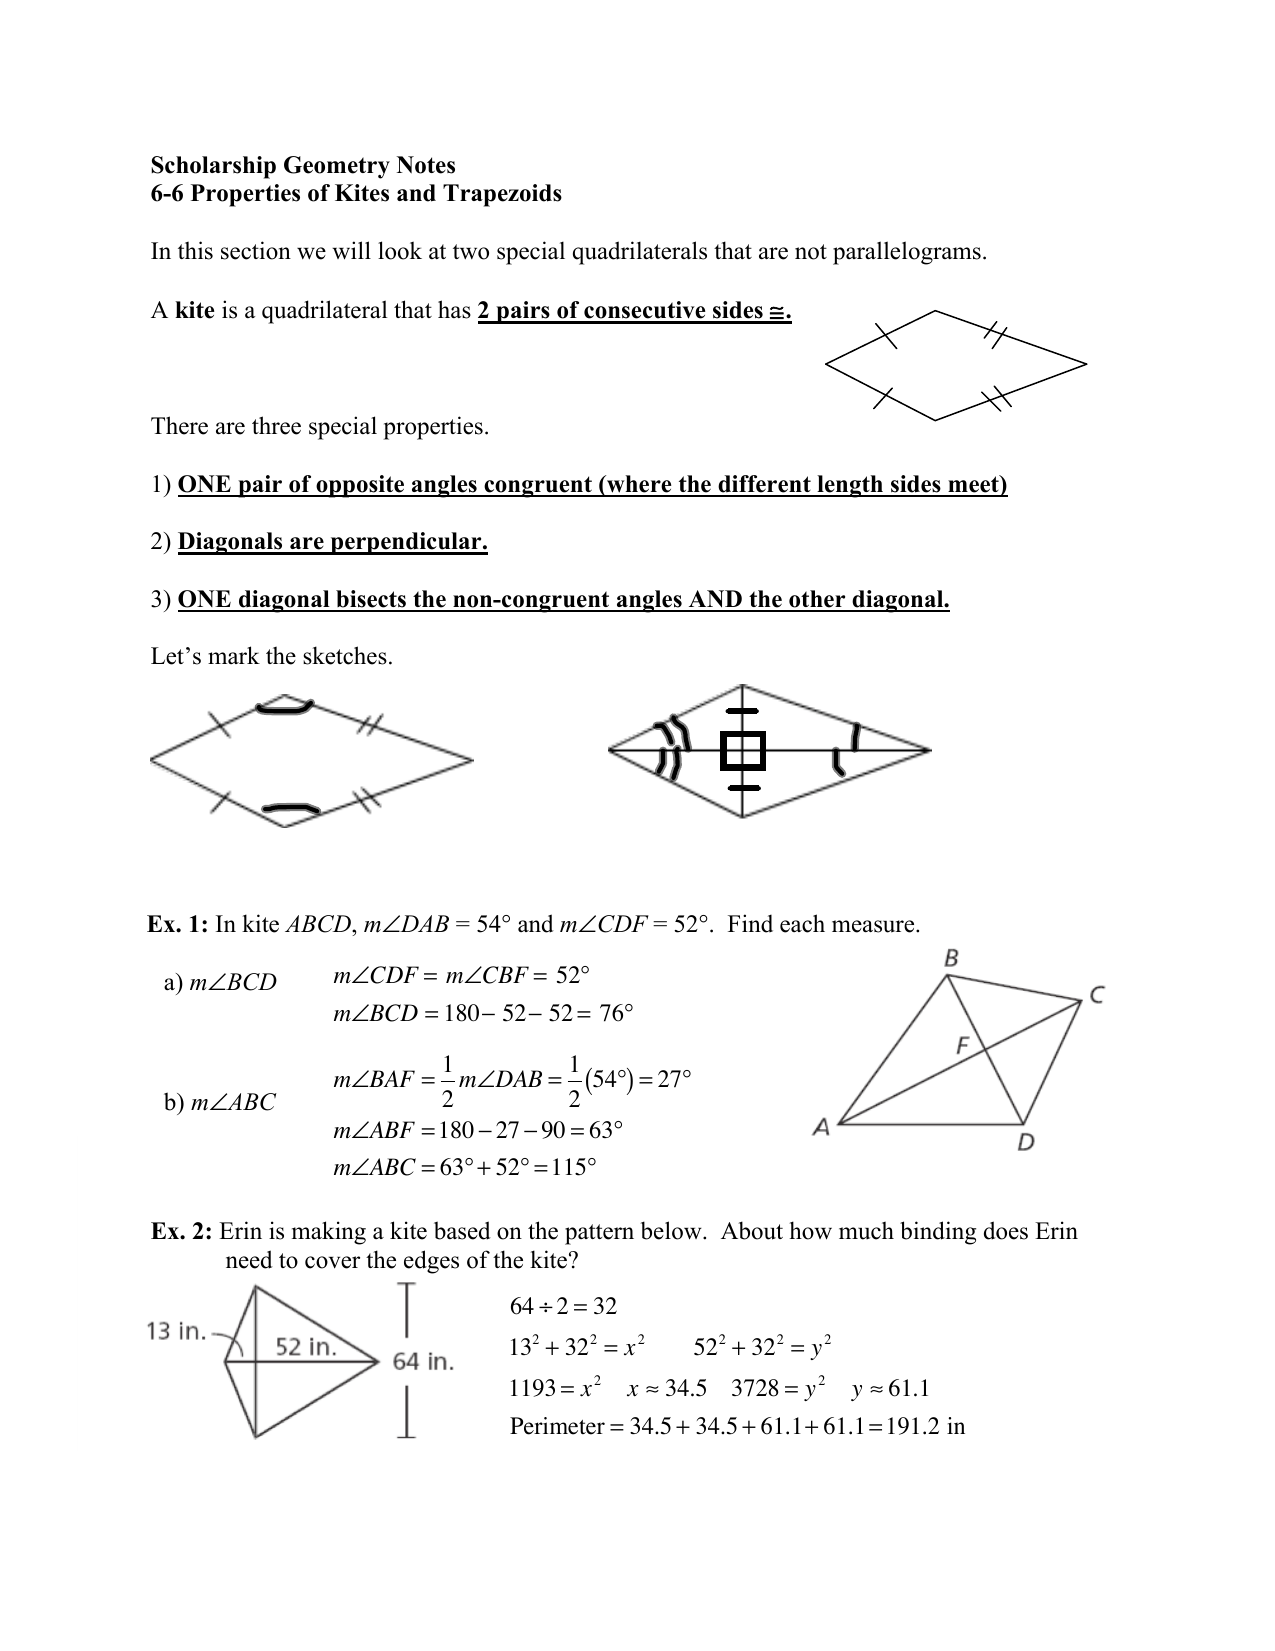 Scholarship Geometry Notes 6-6 Properties of Kites and Trapezoids